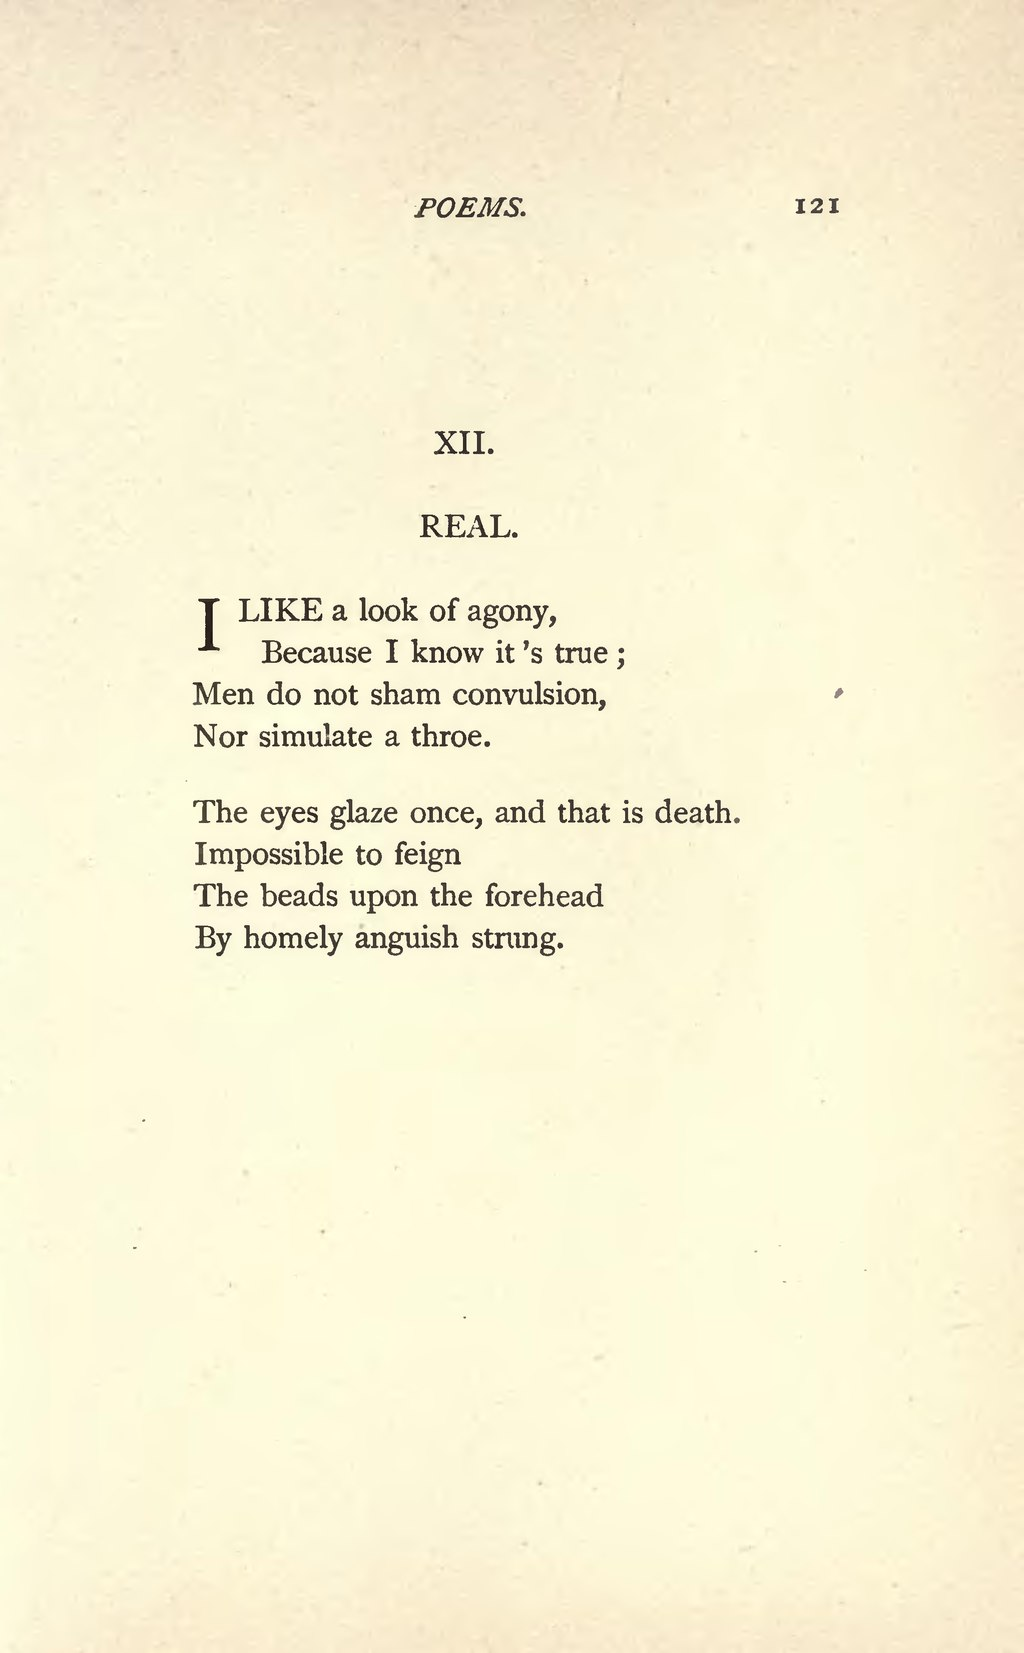 two emily dickinson poems Buy two poems of emily dickinson (sa ) by neil g at jwpeppercom choral sheet music there is no frigate like a book and i never saw a moor: two s.